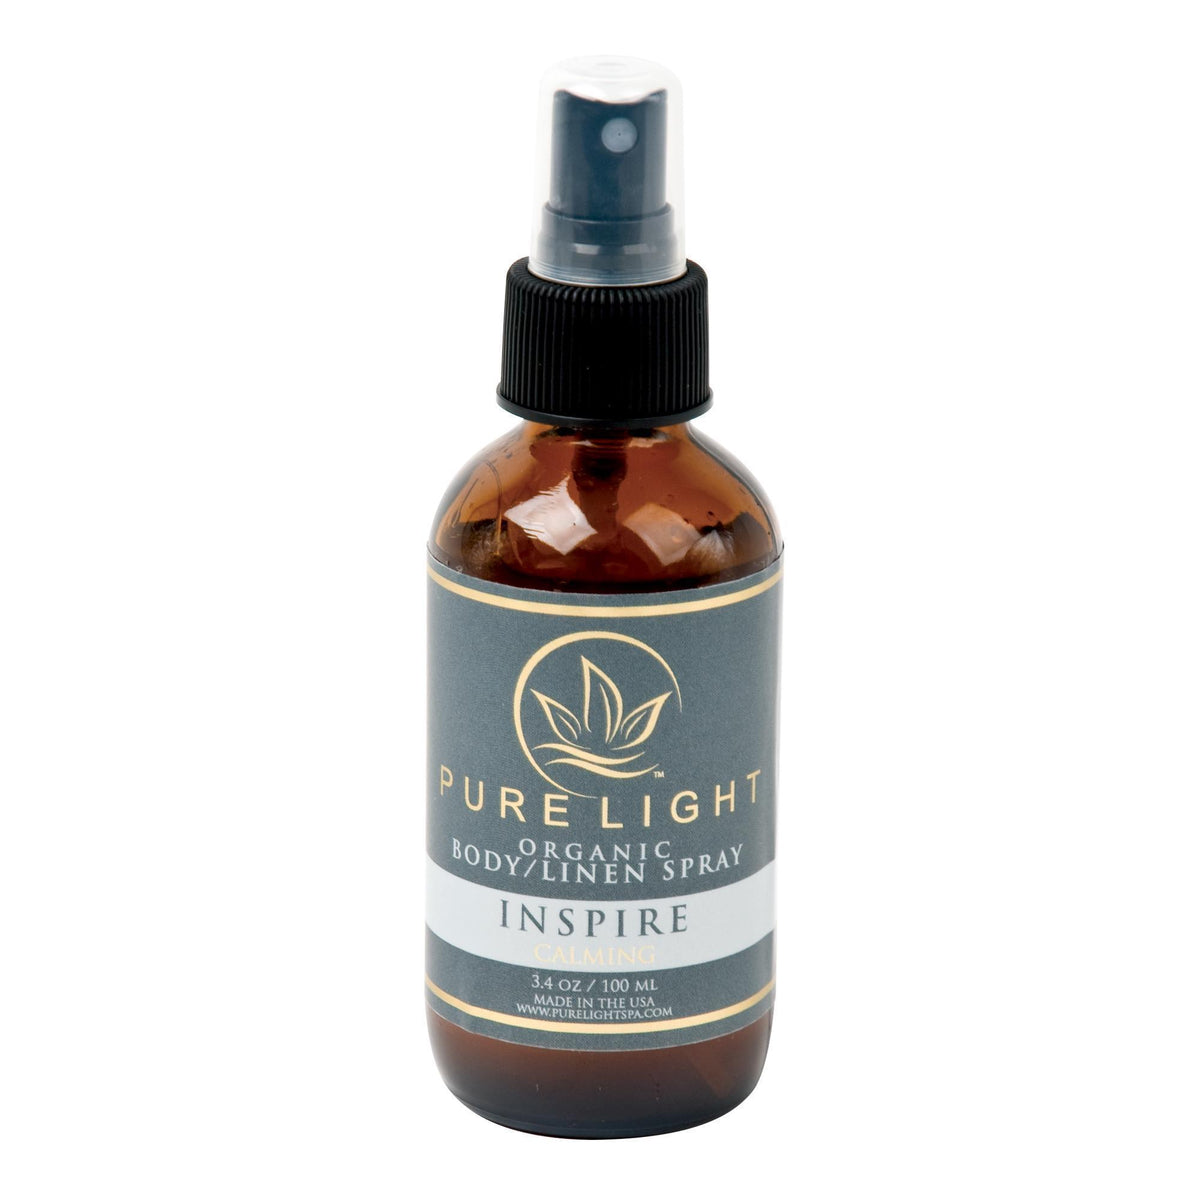 Aromatherapy Pure Light Organic Body  and  Room Spray / Inspire / 4oz